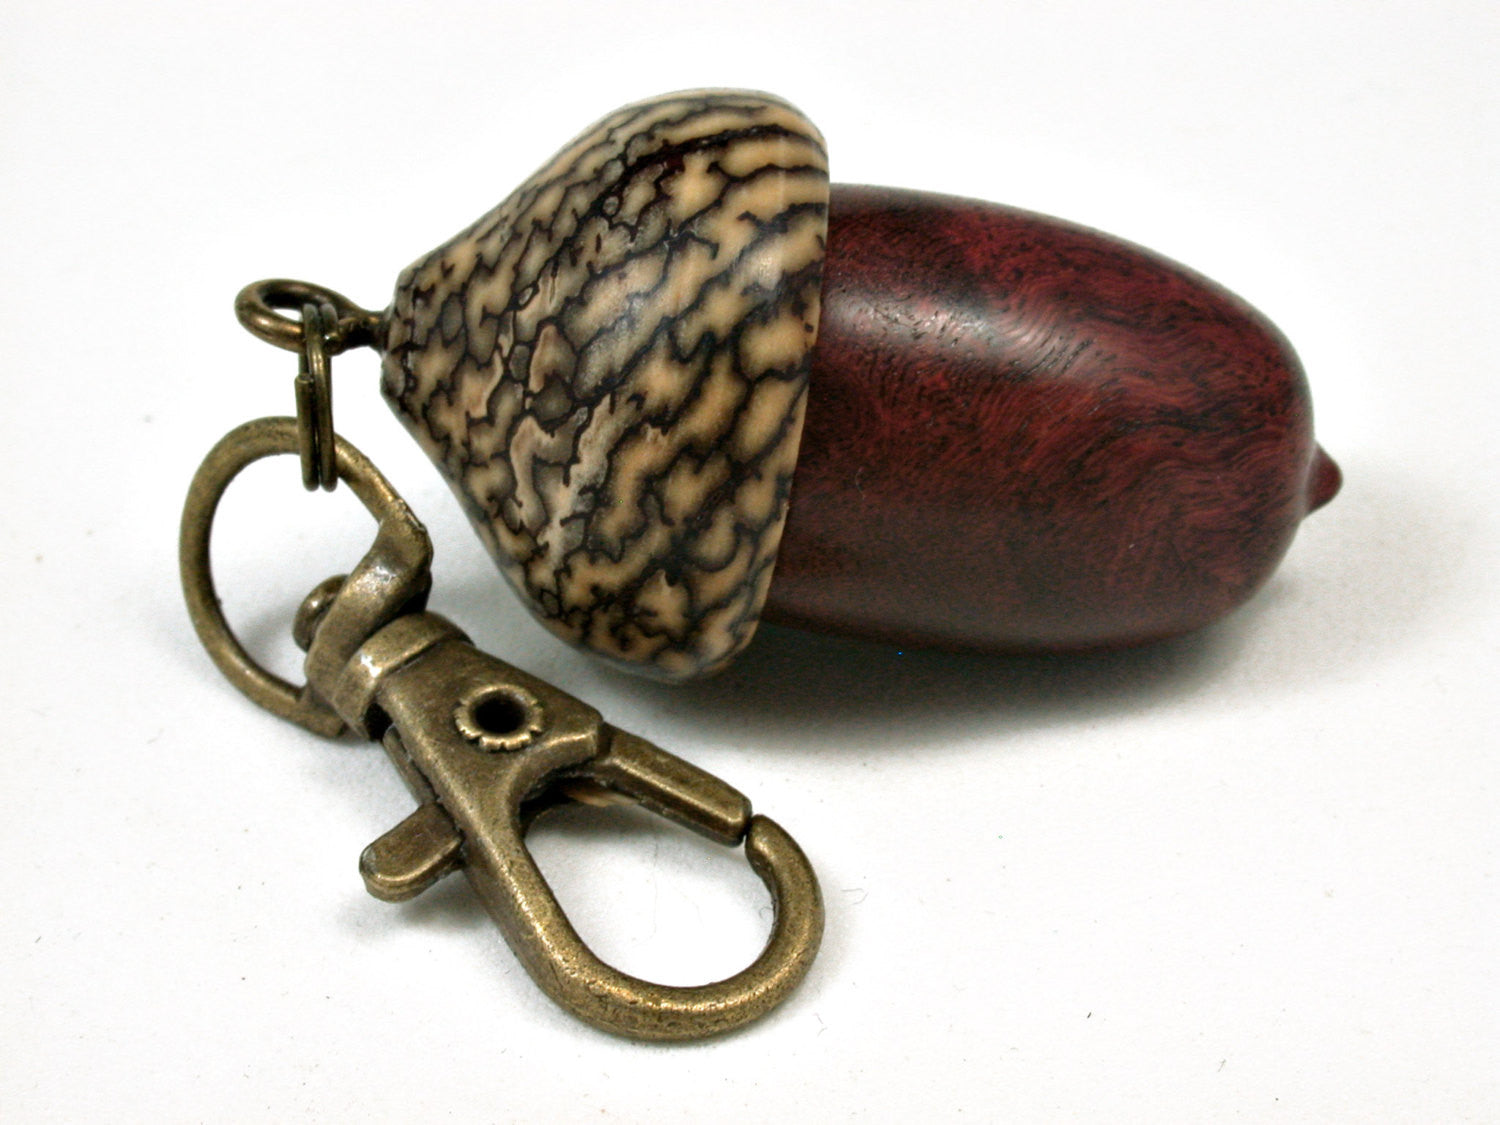 LV-2443 Logwood Burl & Betelnut Acorn Pendant Box, Bag Charm, Keychain-SCREW CAP